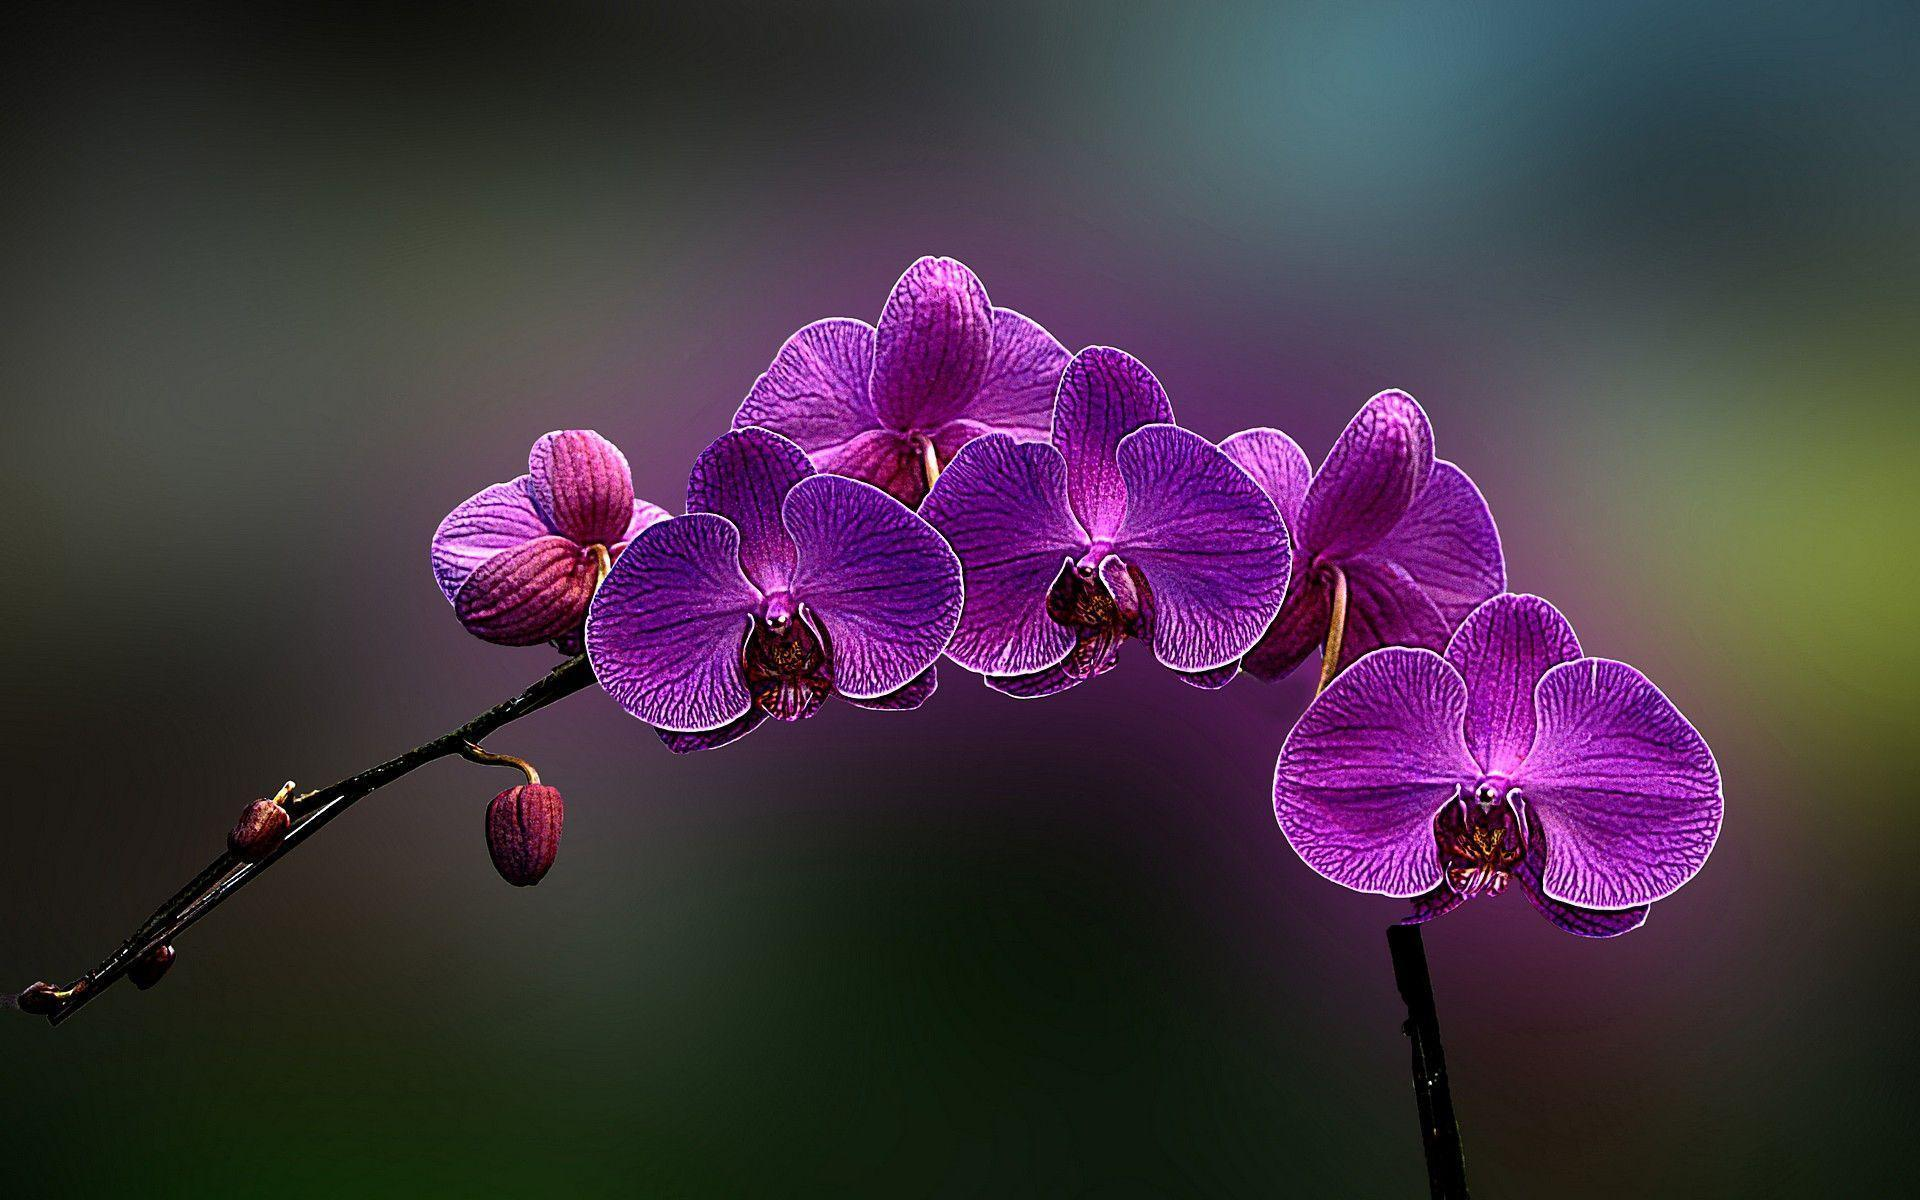 orchid wallpapers backgrounds images - photo #1